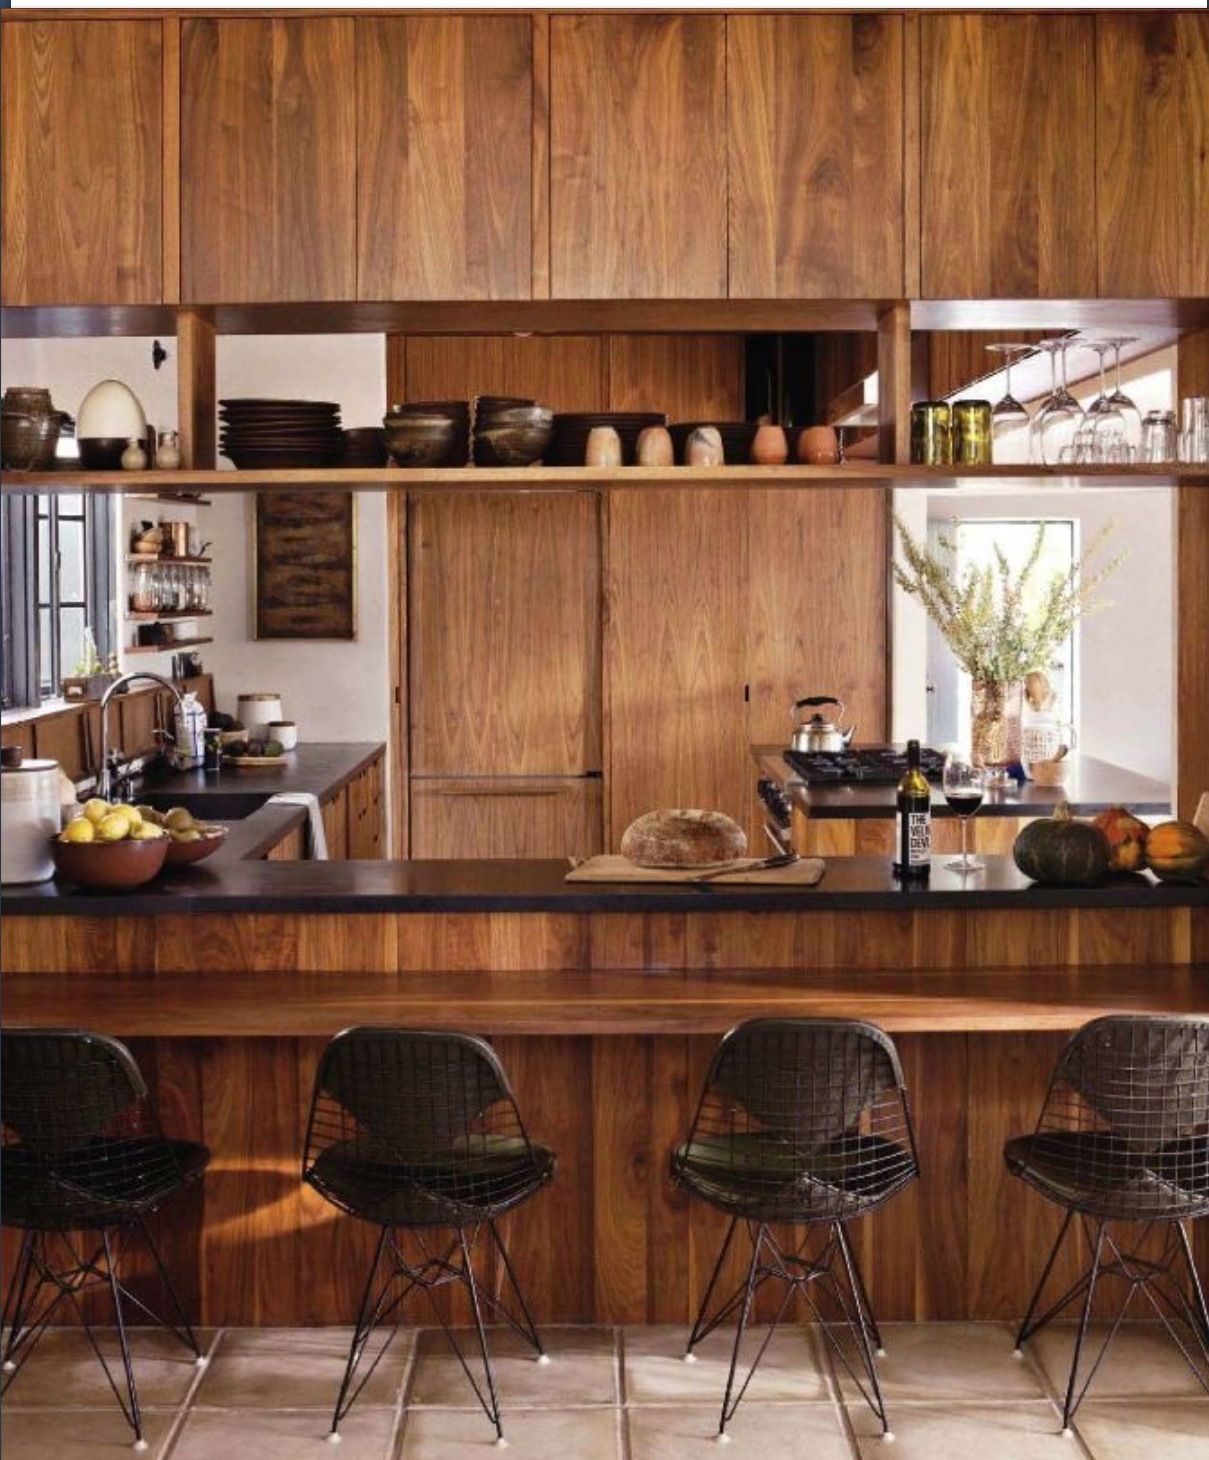 warm timber kitchen design home sweet home pinterest